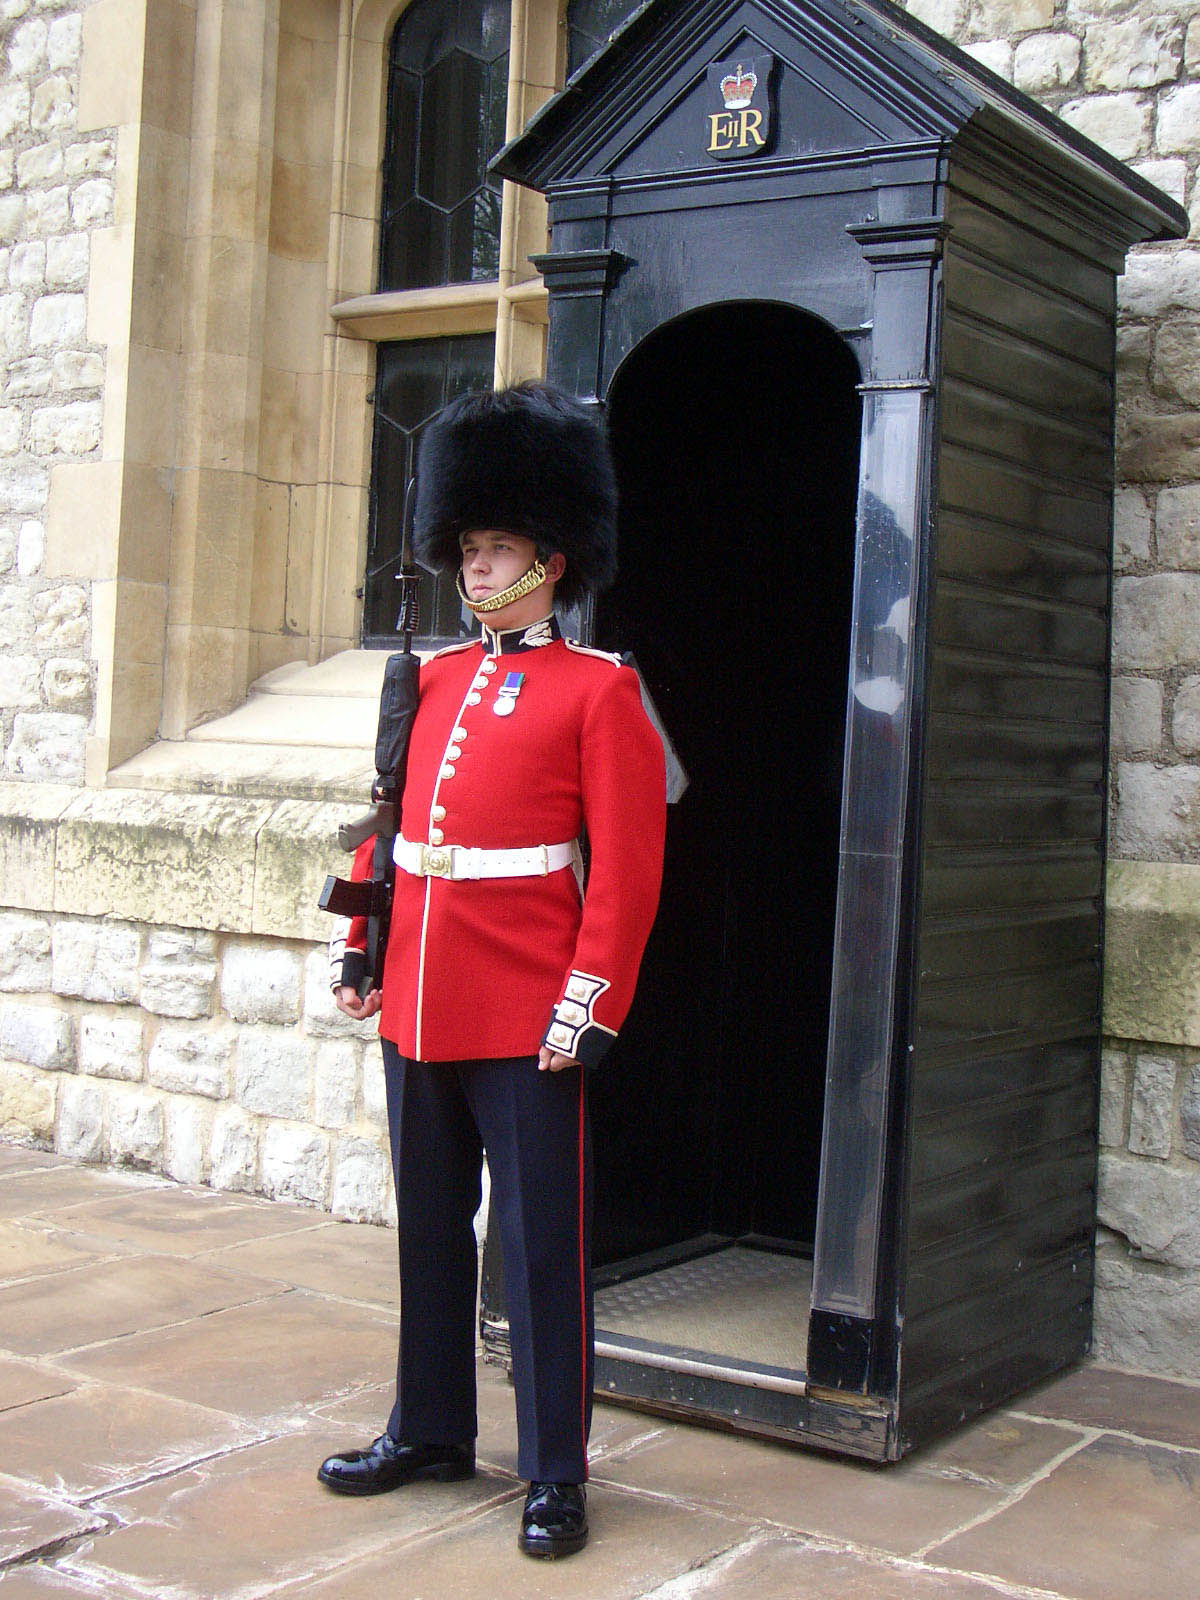 A Grenadier Guard at the Tower – Travels with My Camera